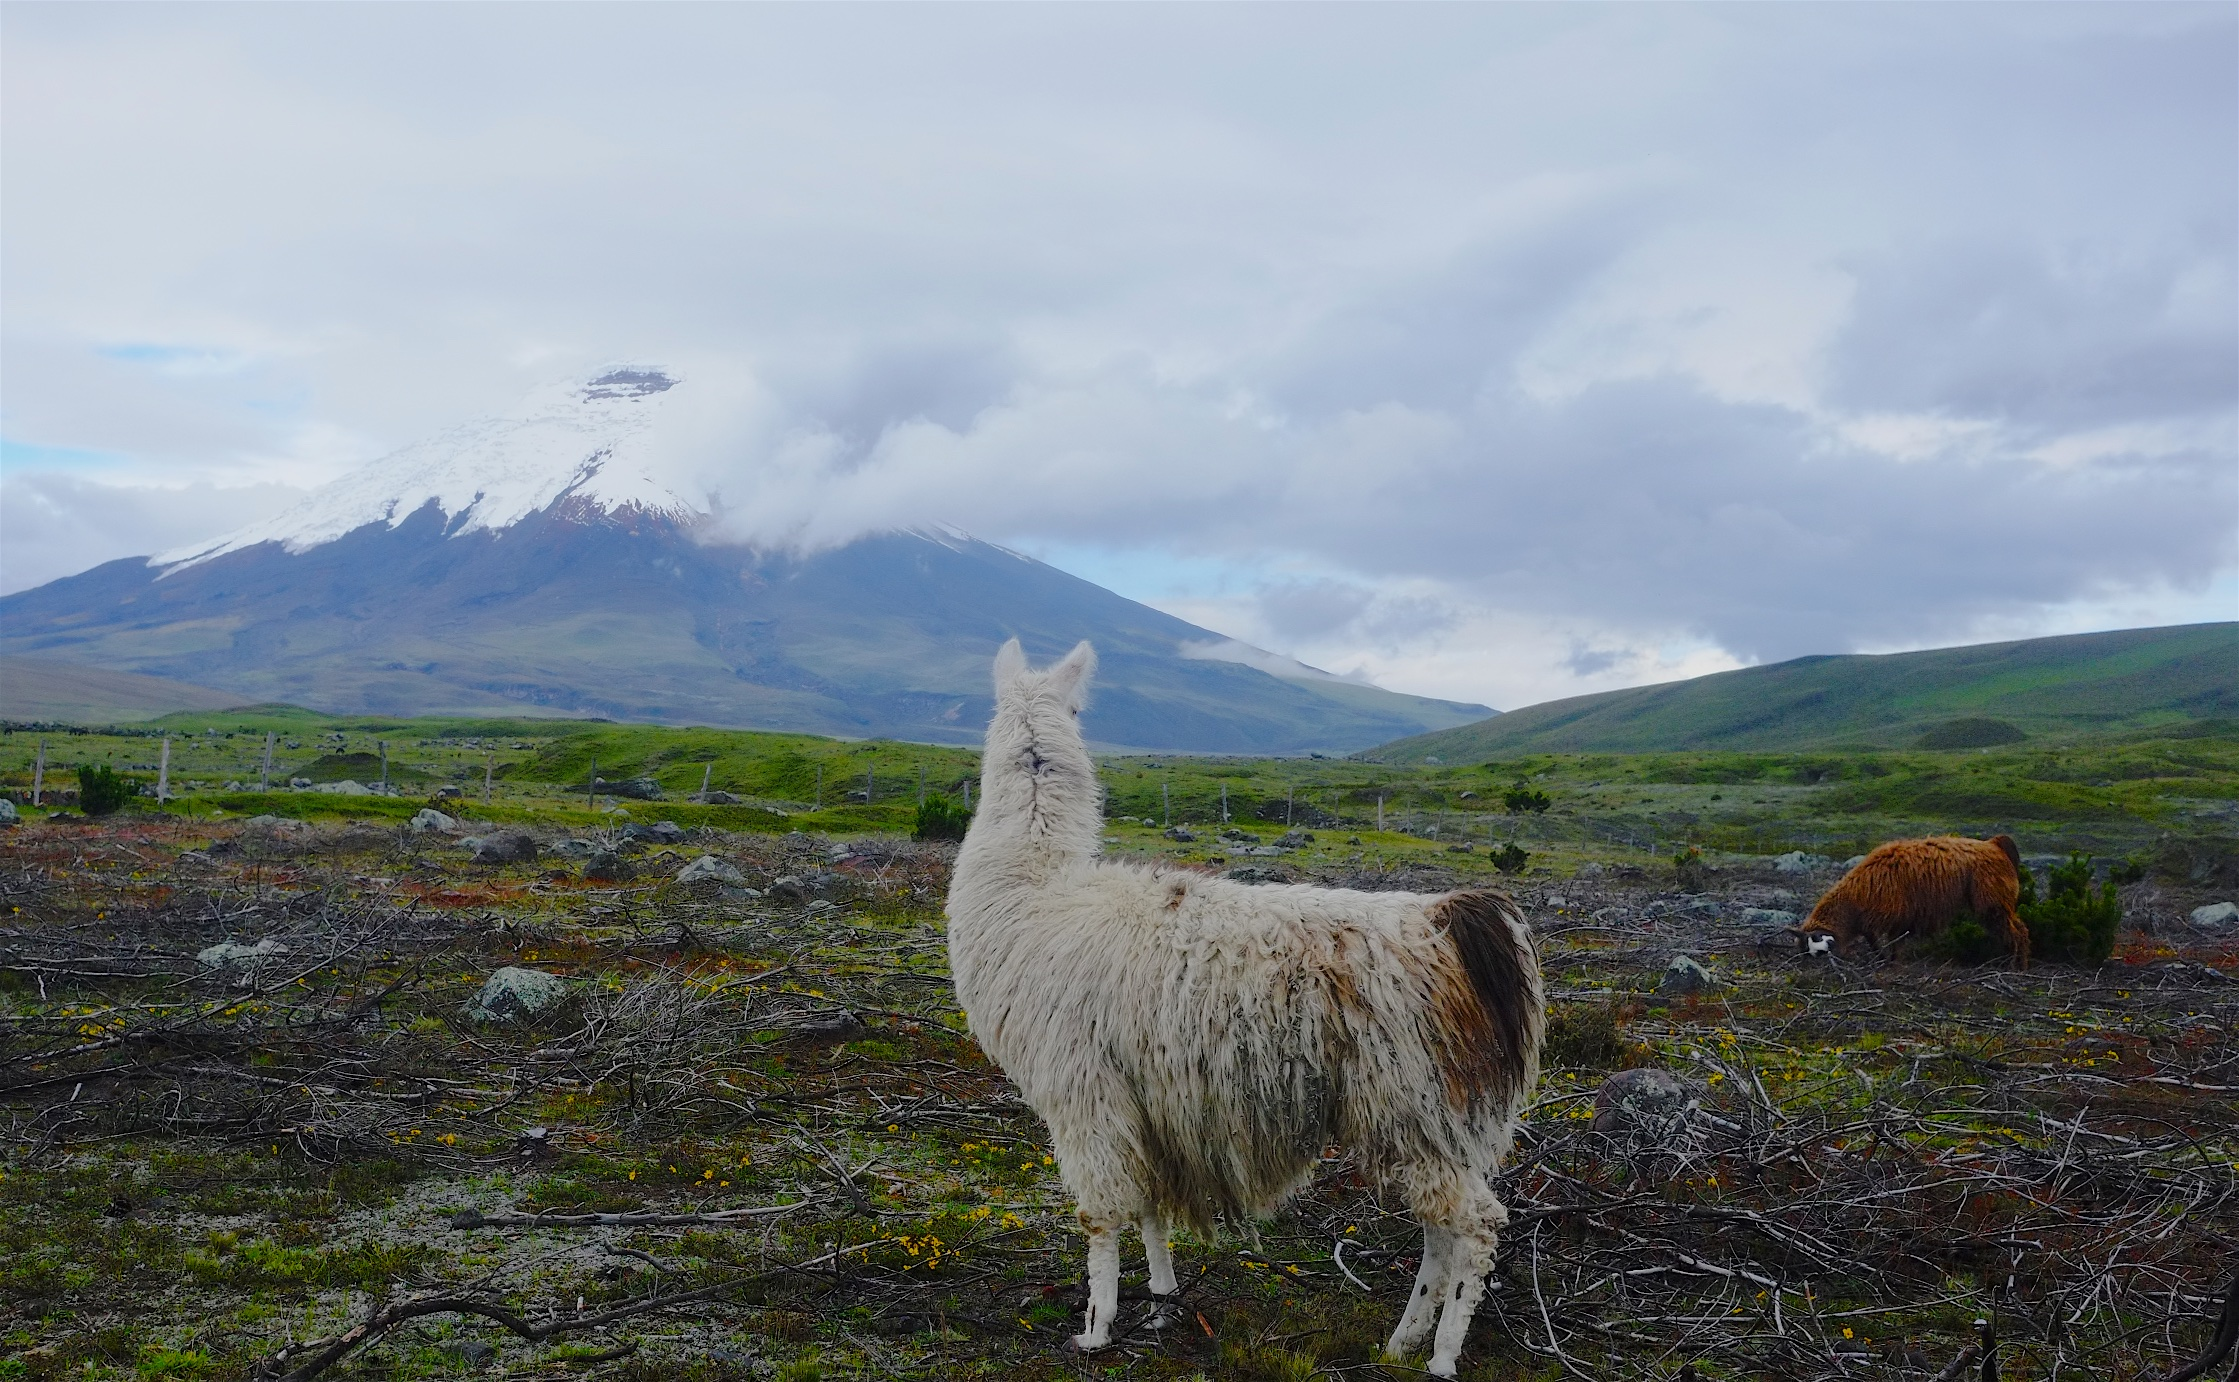 Lama overlooking Cotopaxi.